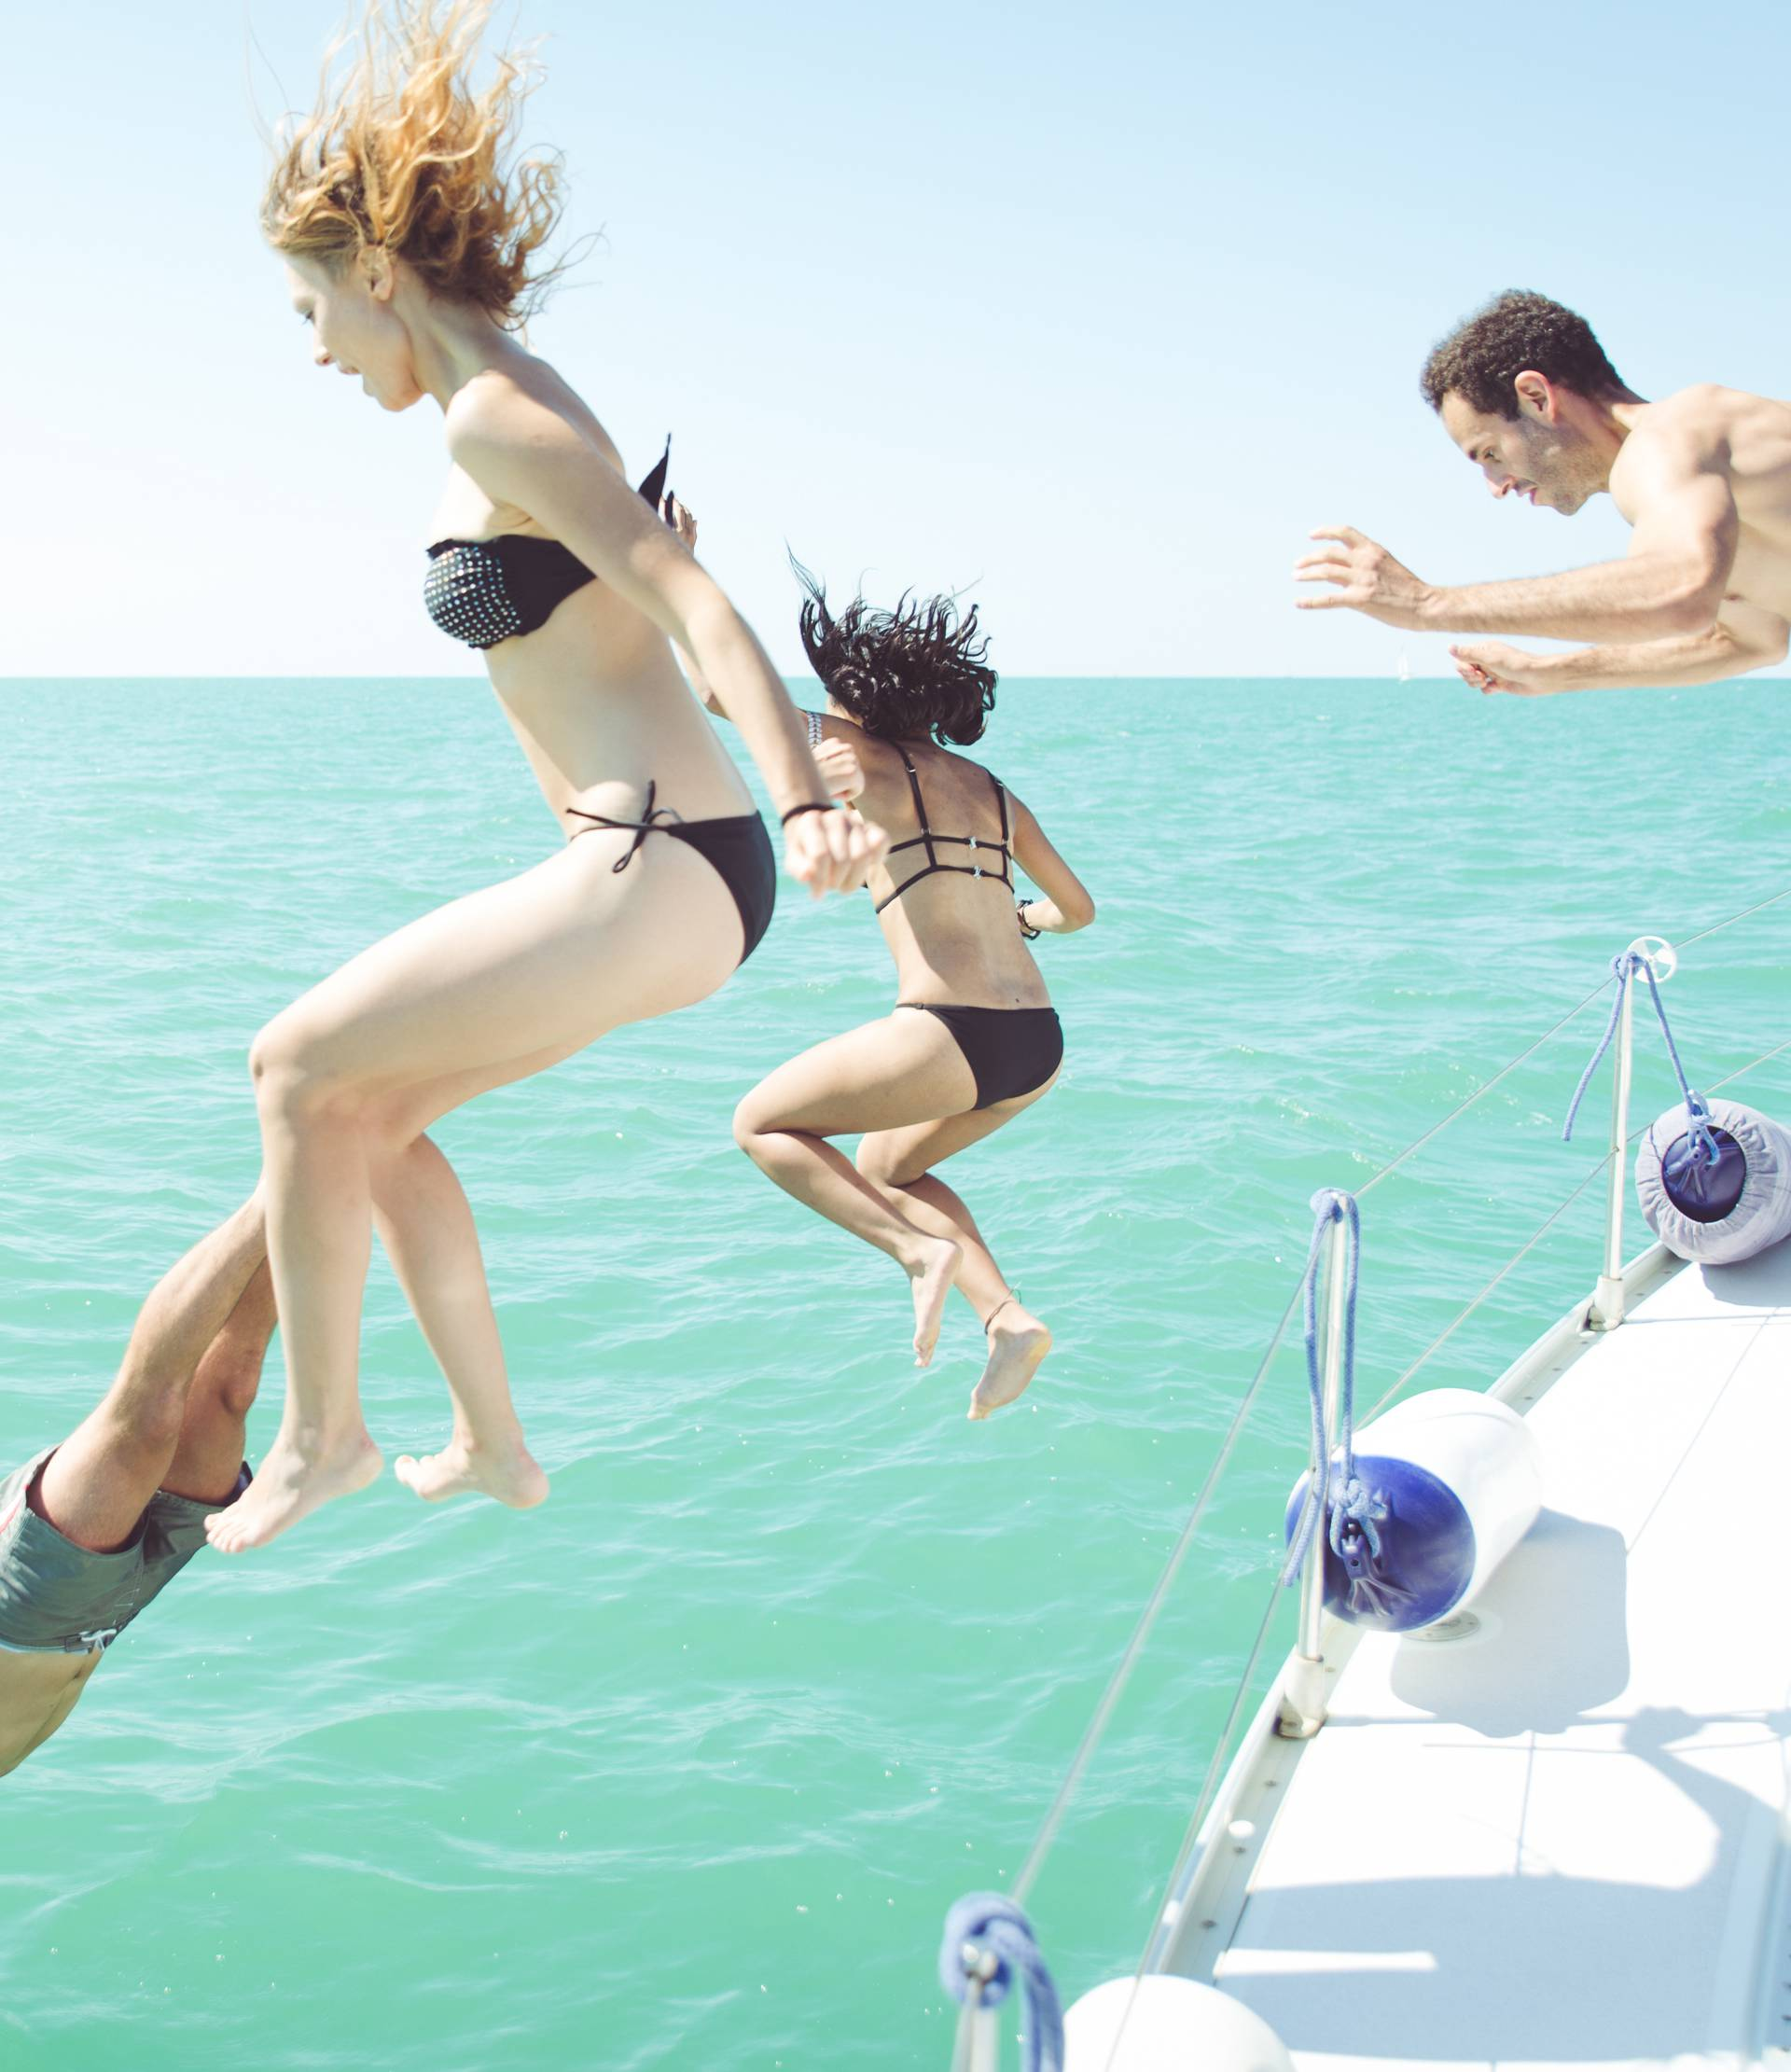 diving in the water during a boat excursion